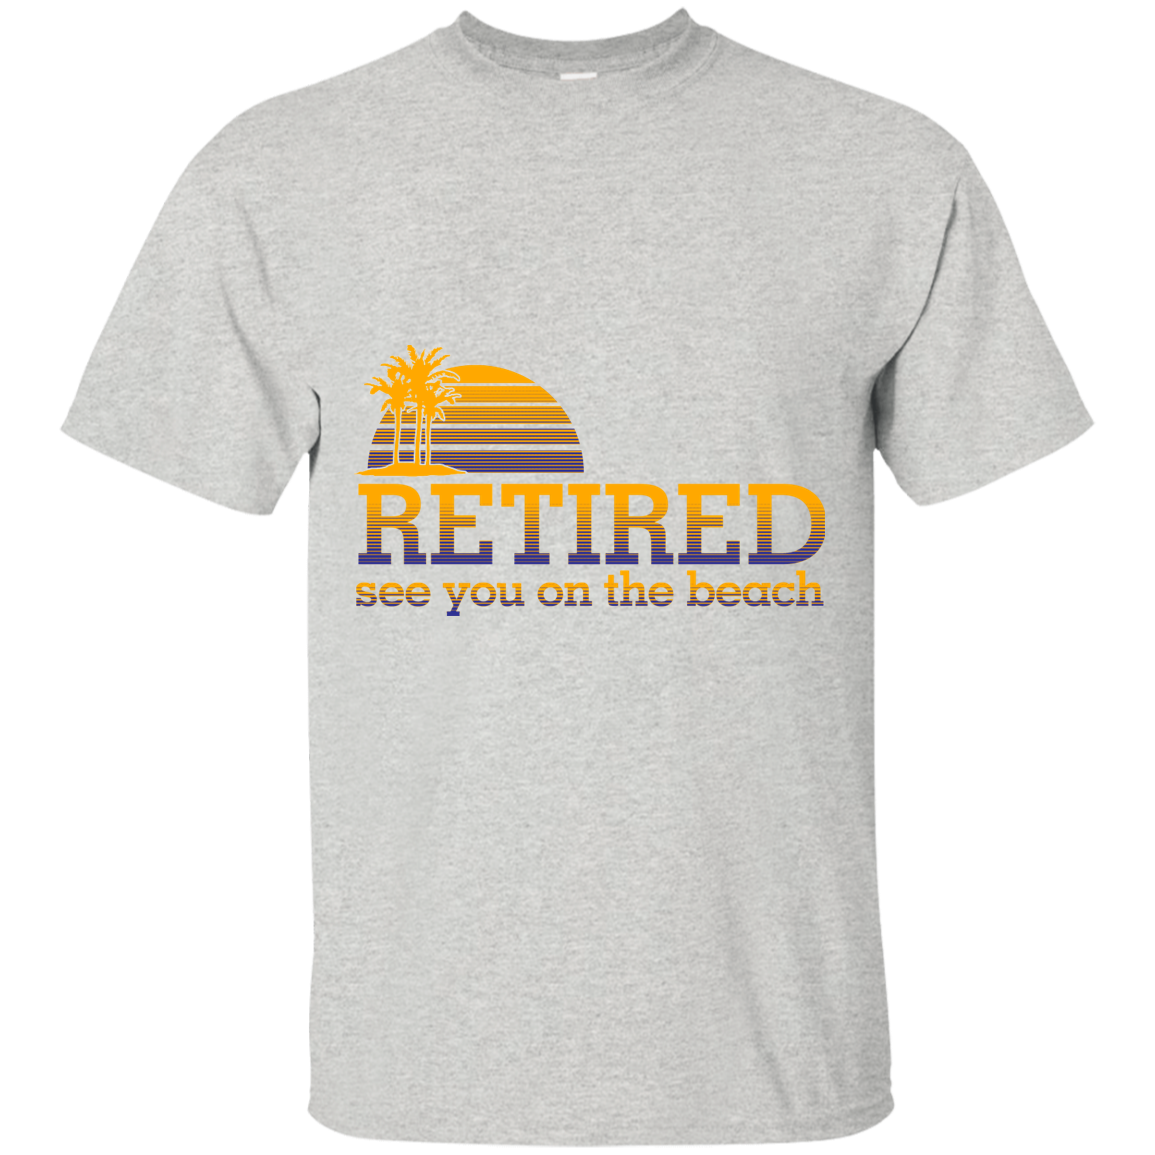 Retired T Shirt See You On The Beach